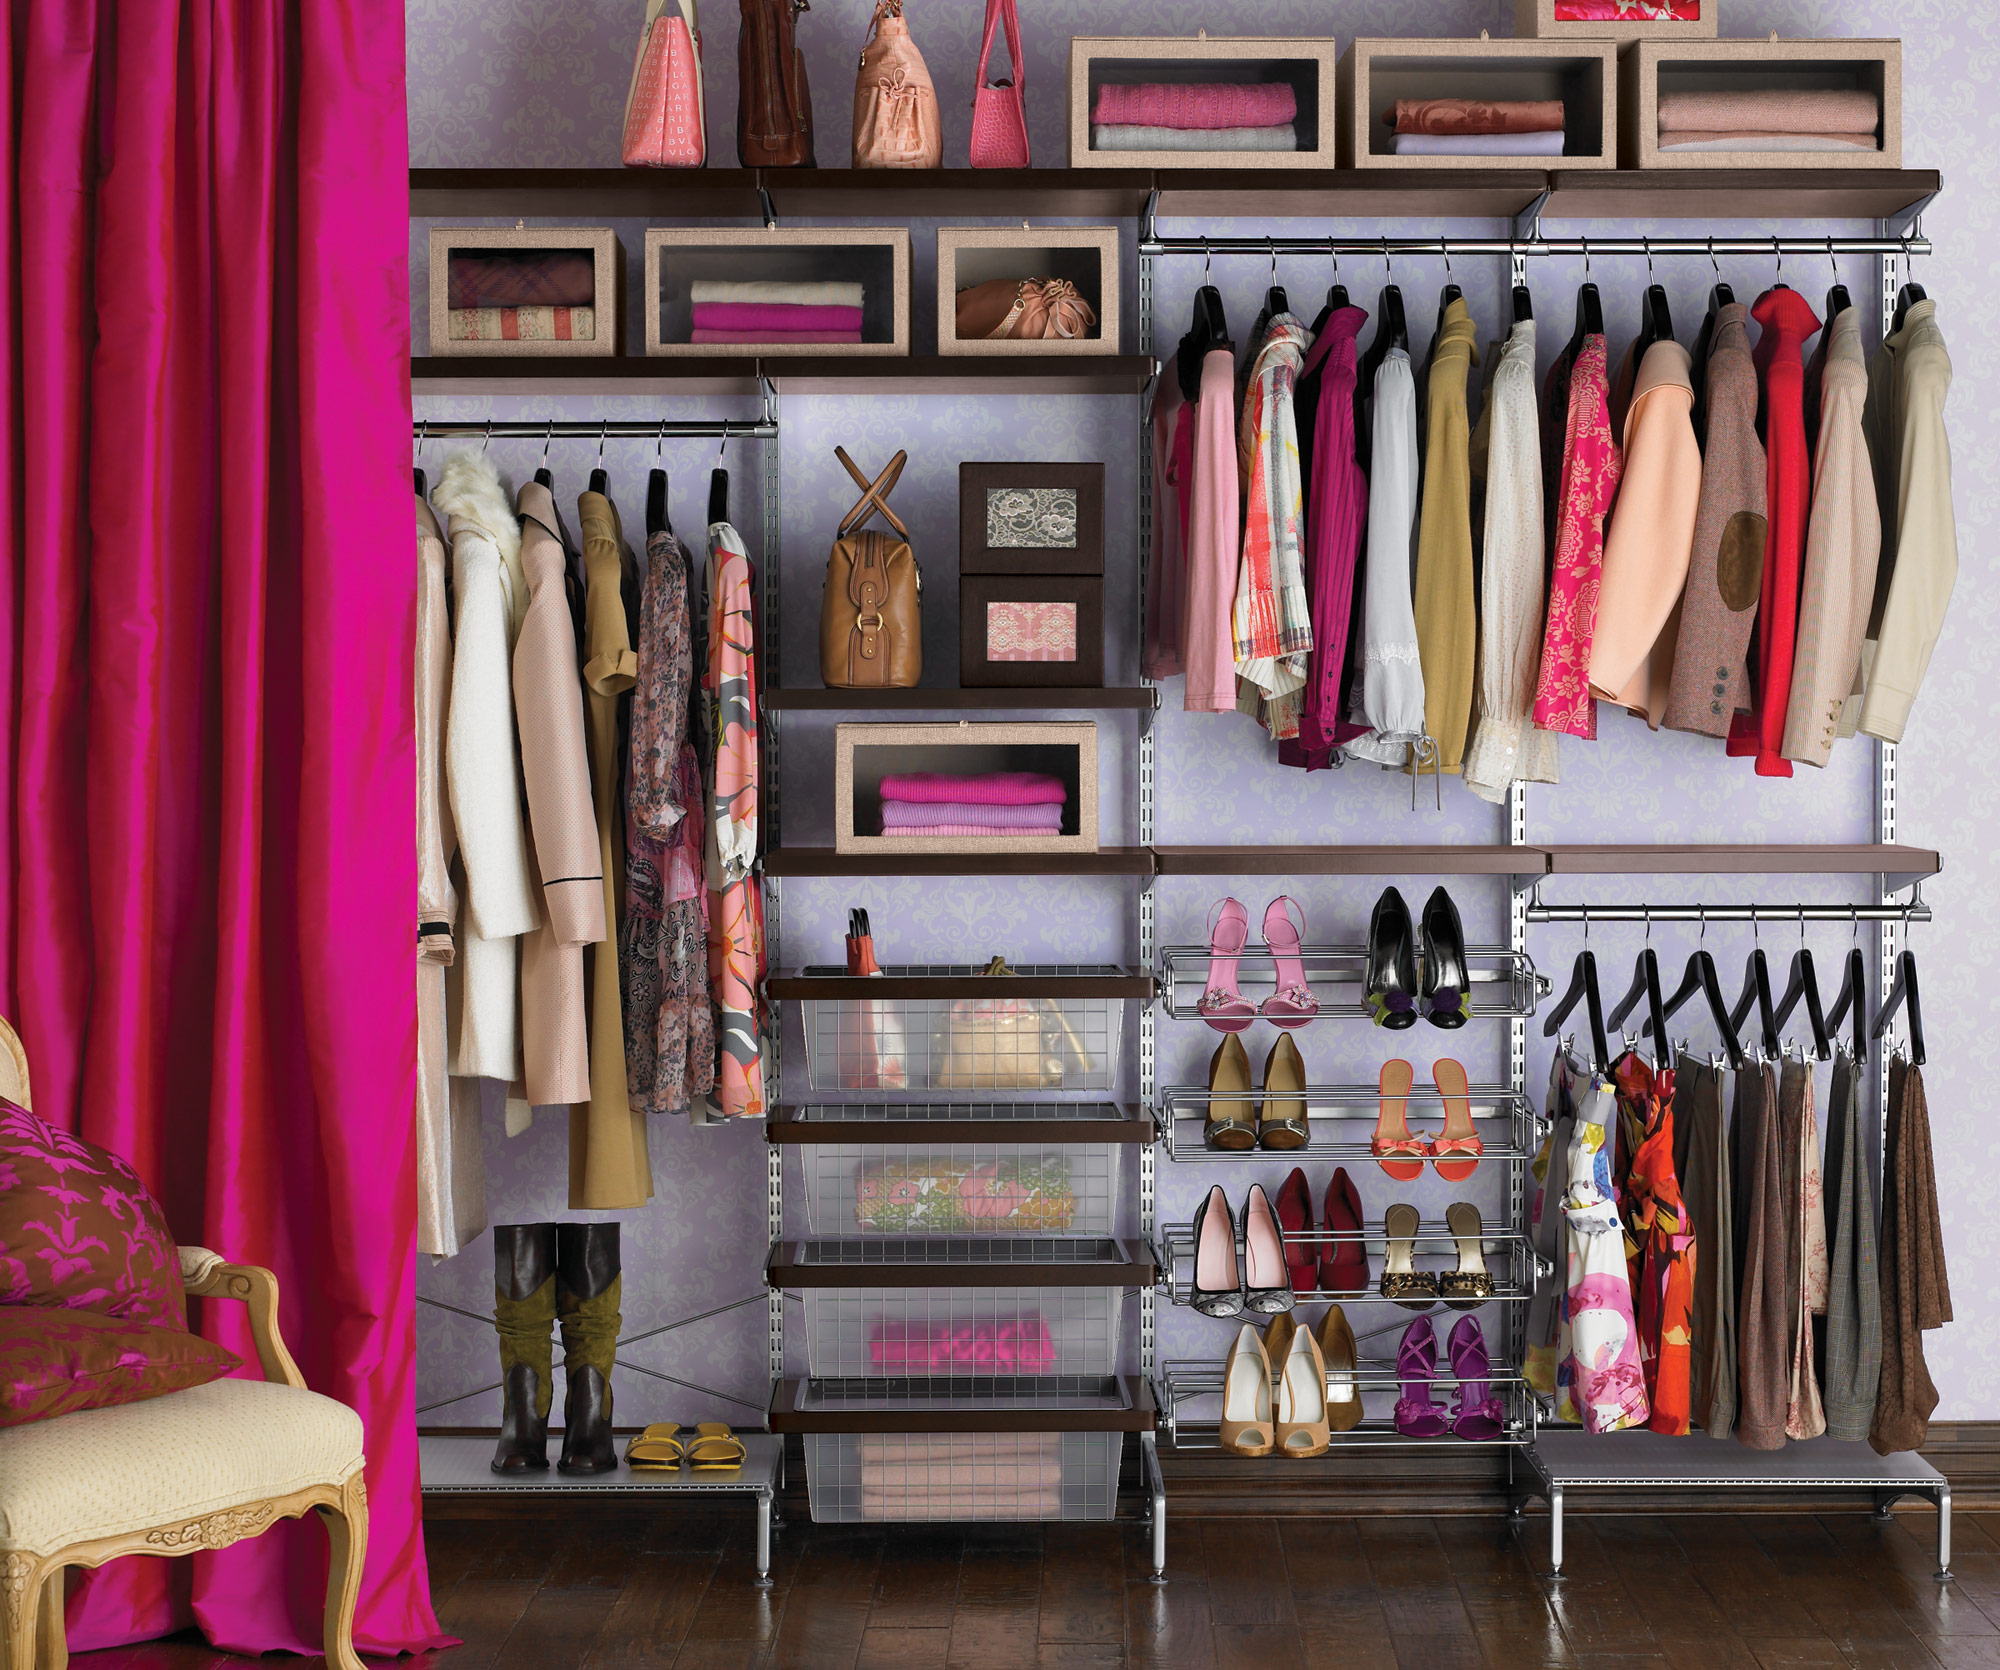 Charming Friday Finds: How To Build The Perfect Wardrobe